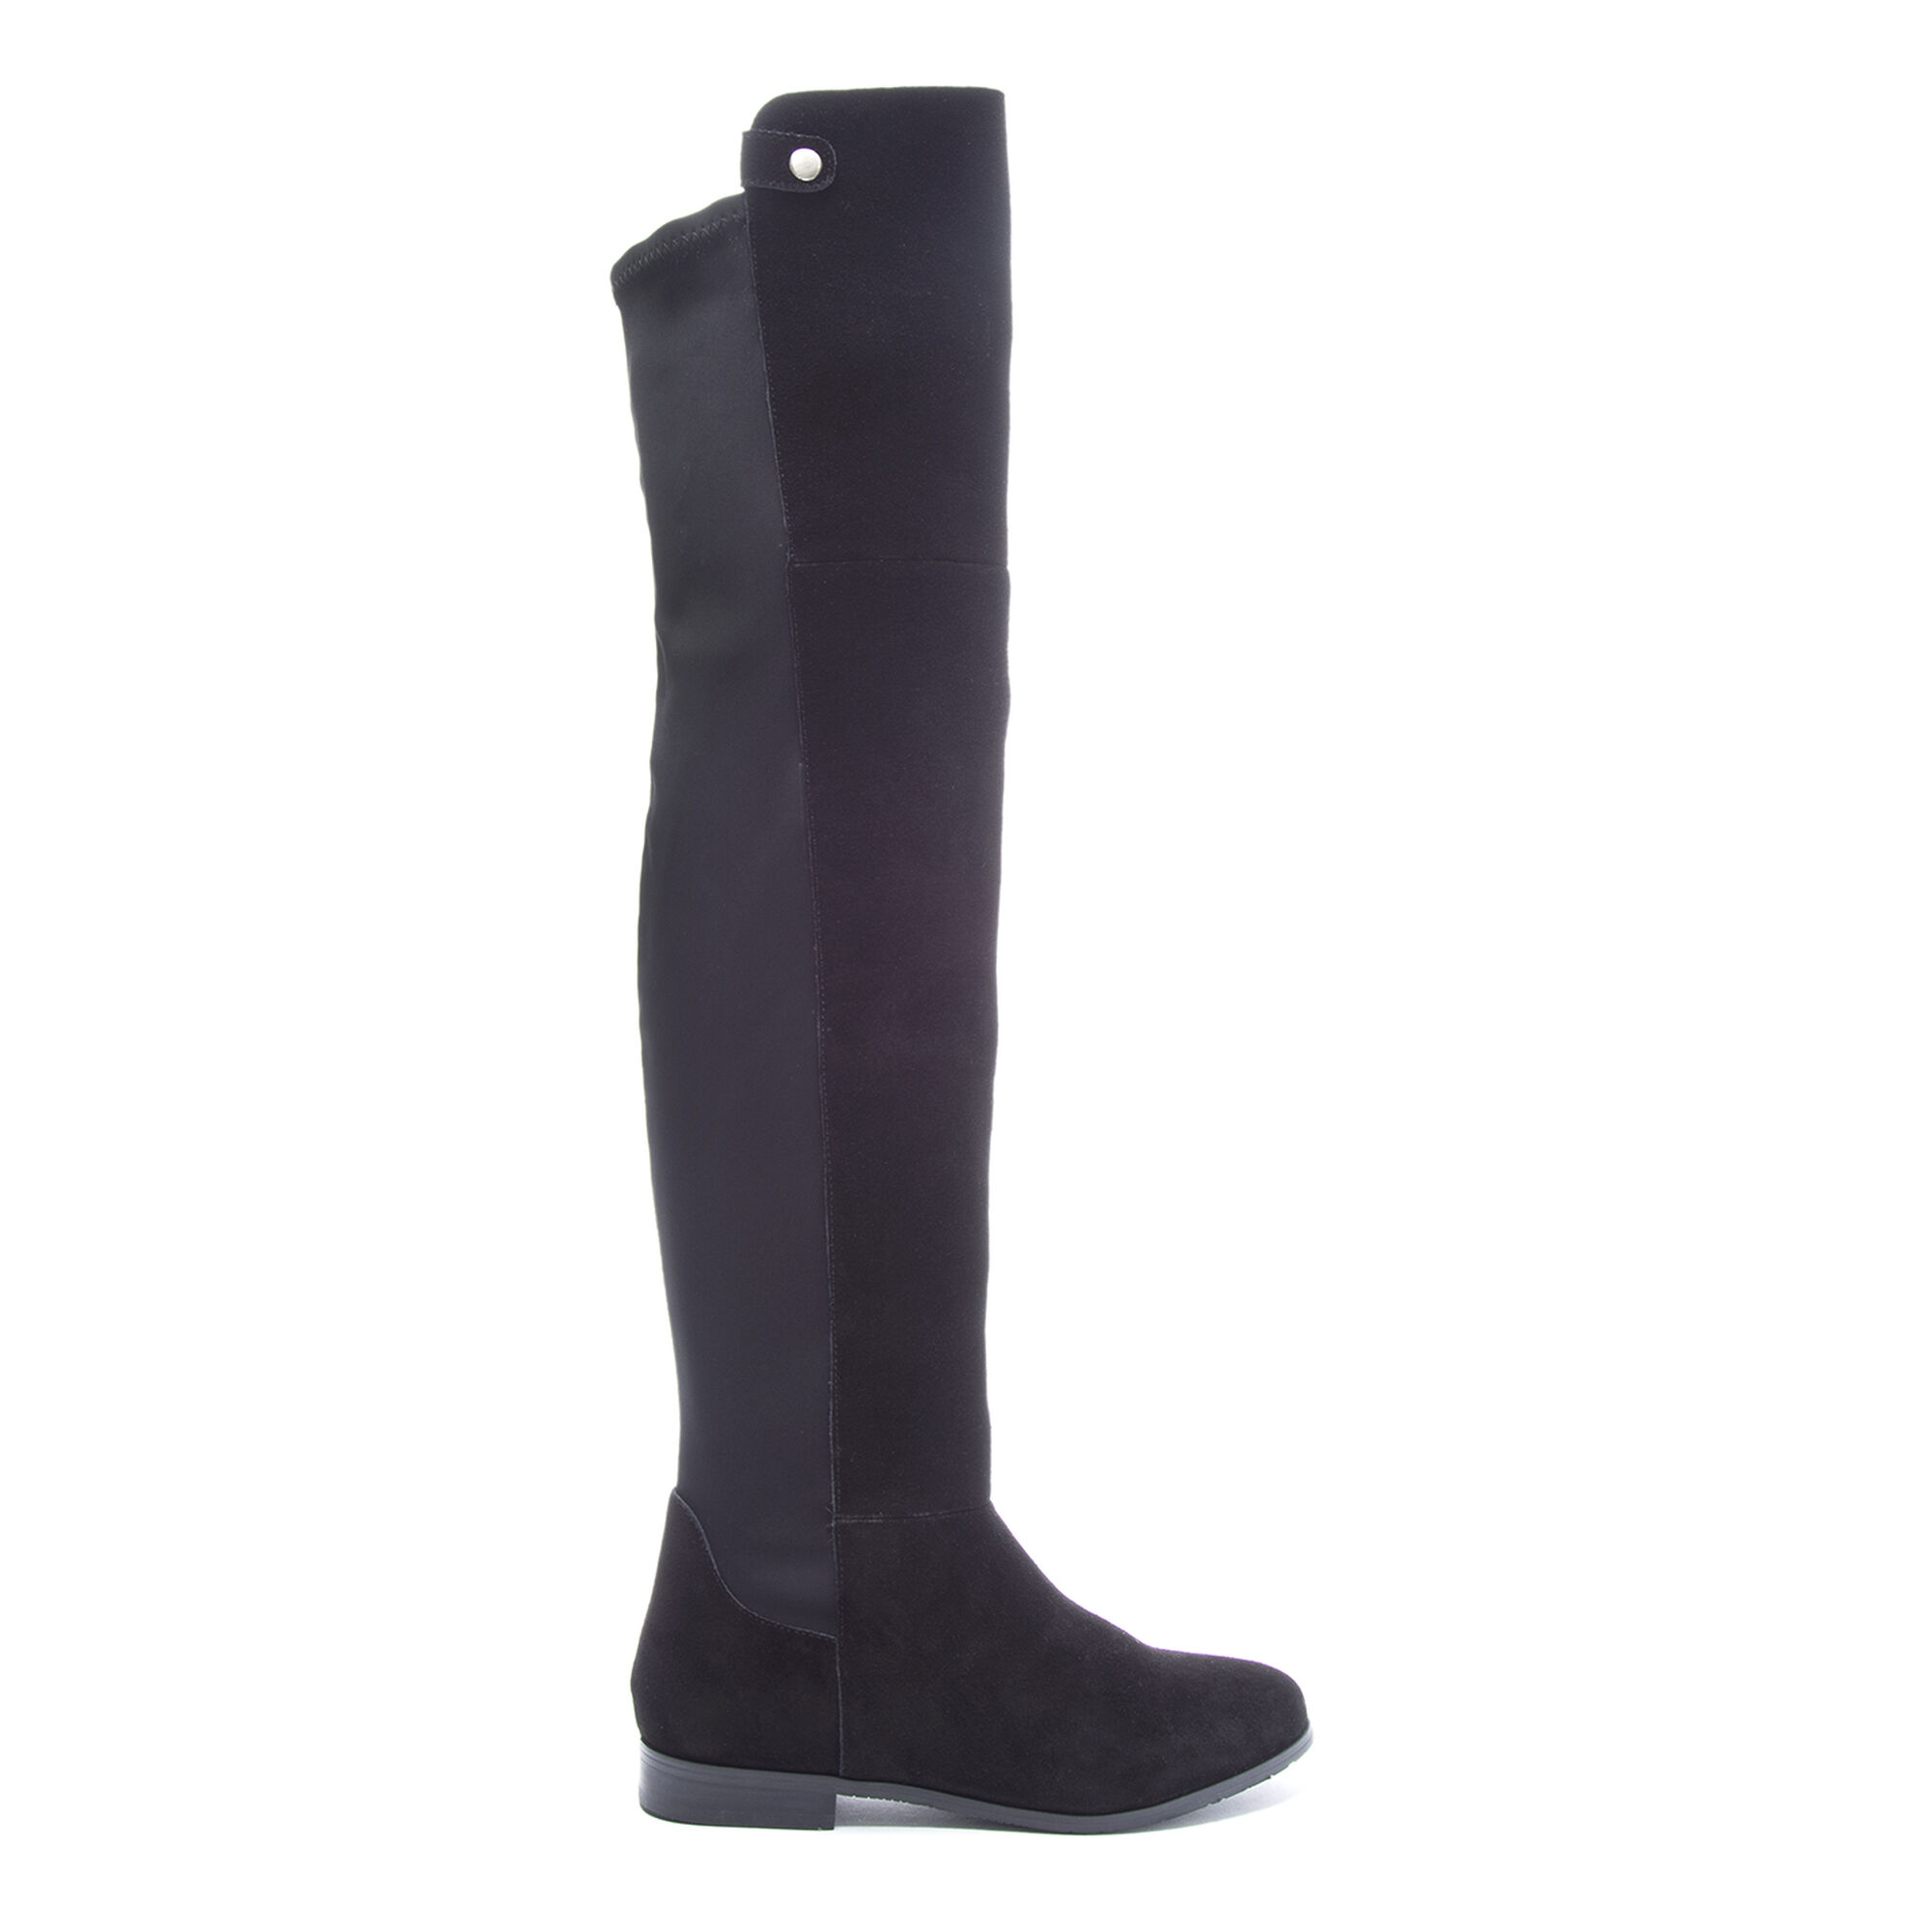 a0d8e8a0d7e Robin Over the Knee Thigh High Suede Boots